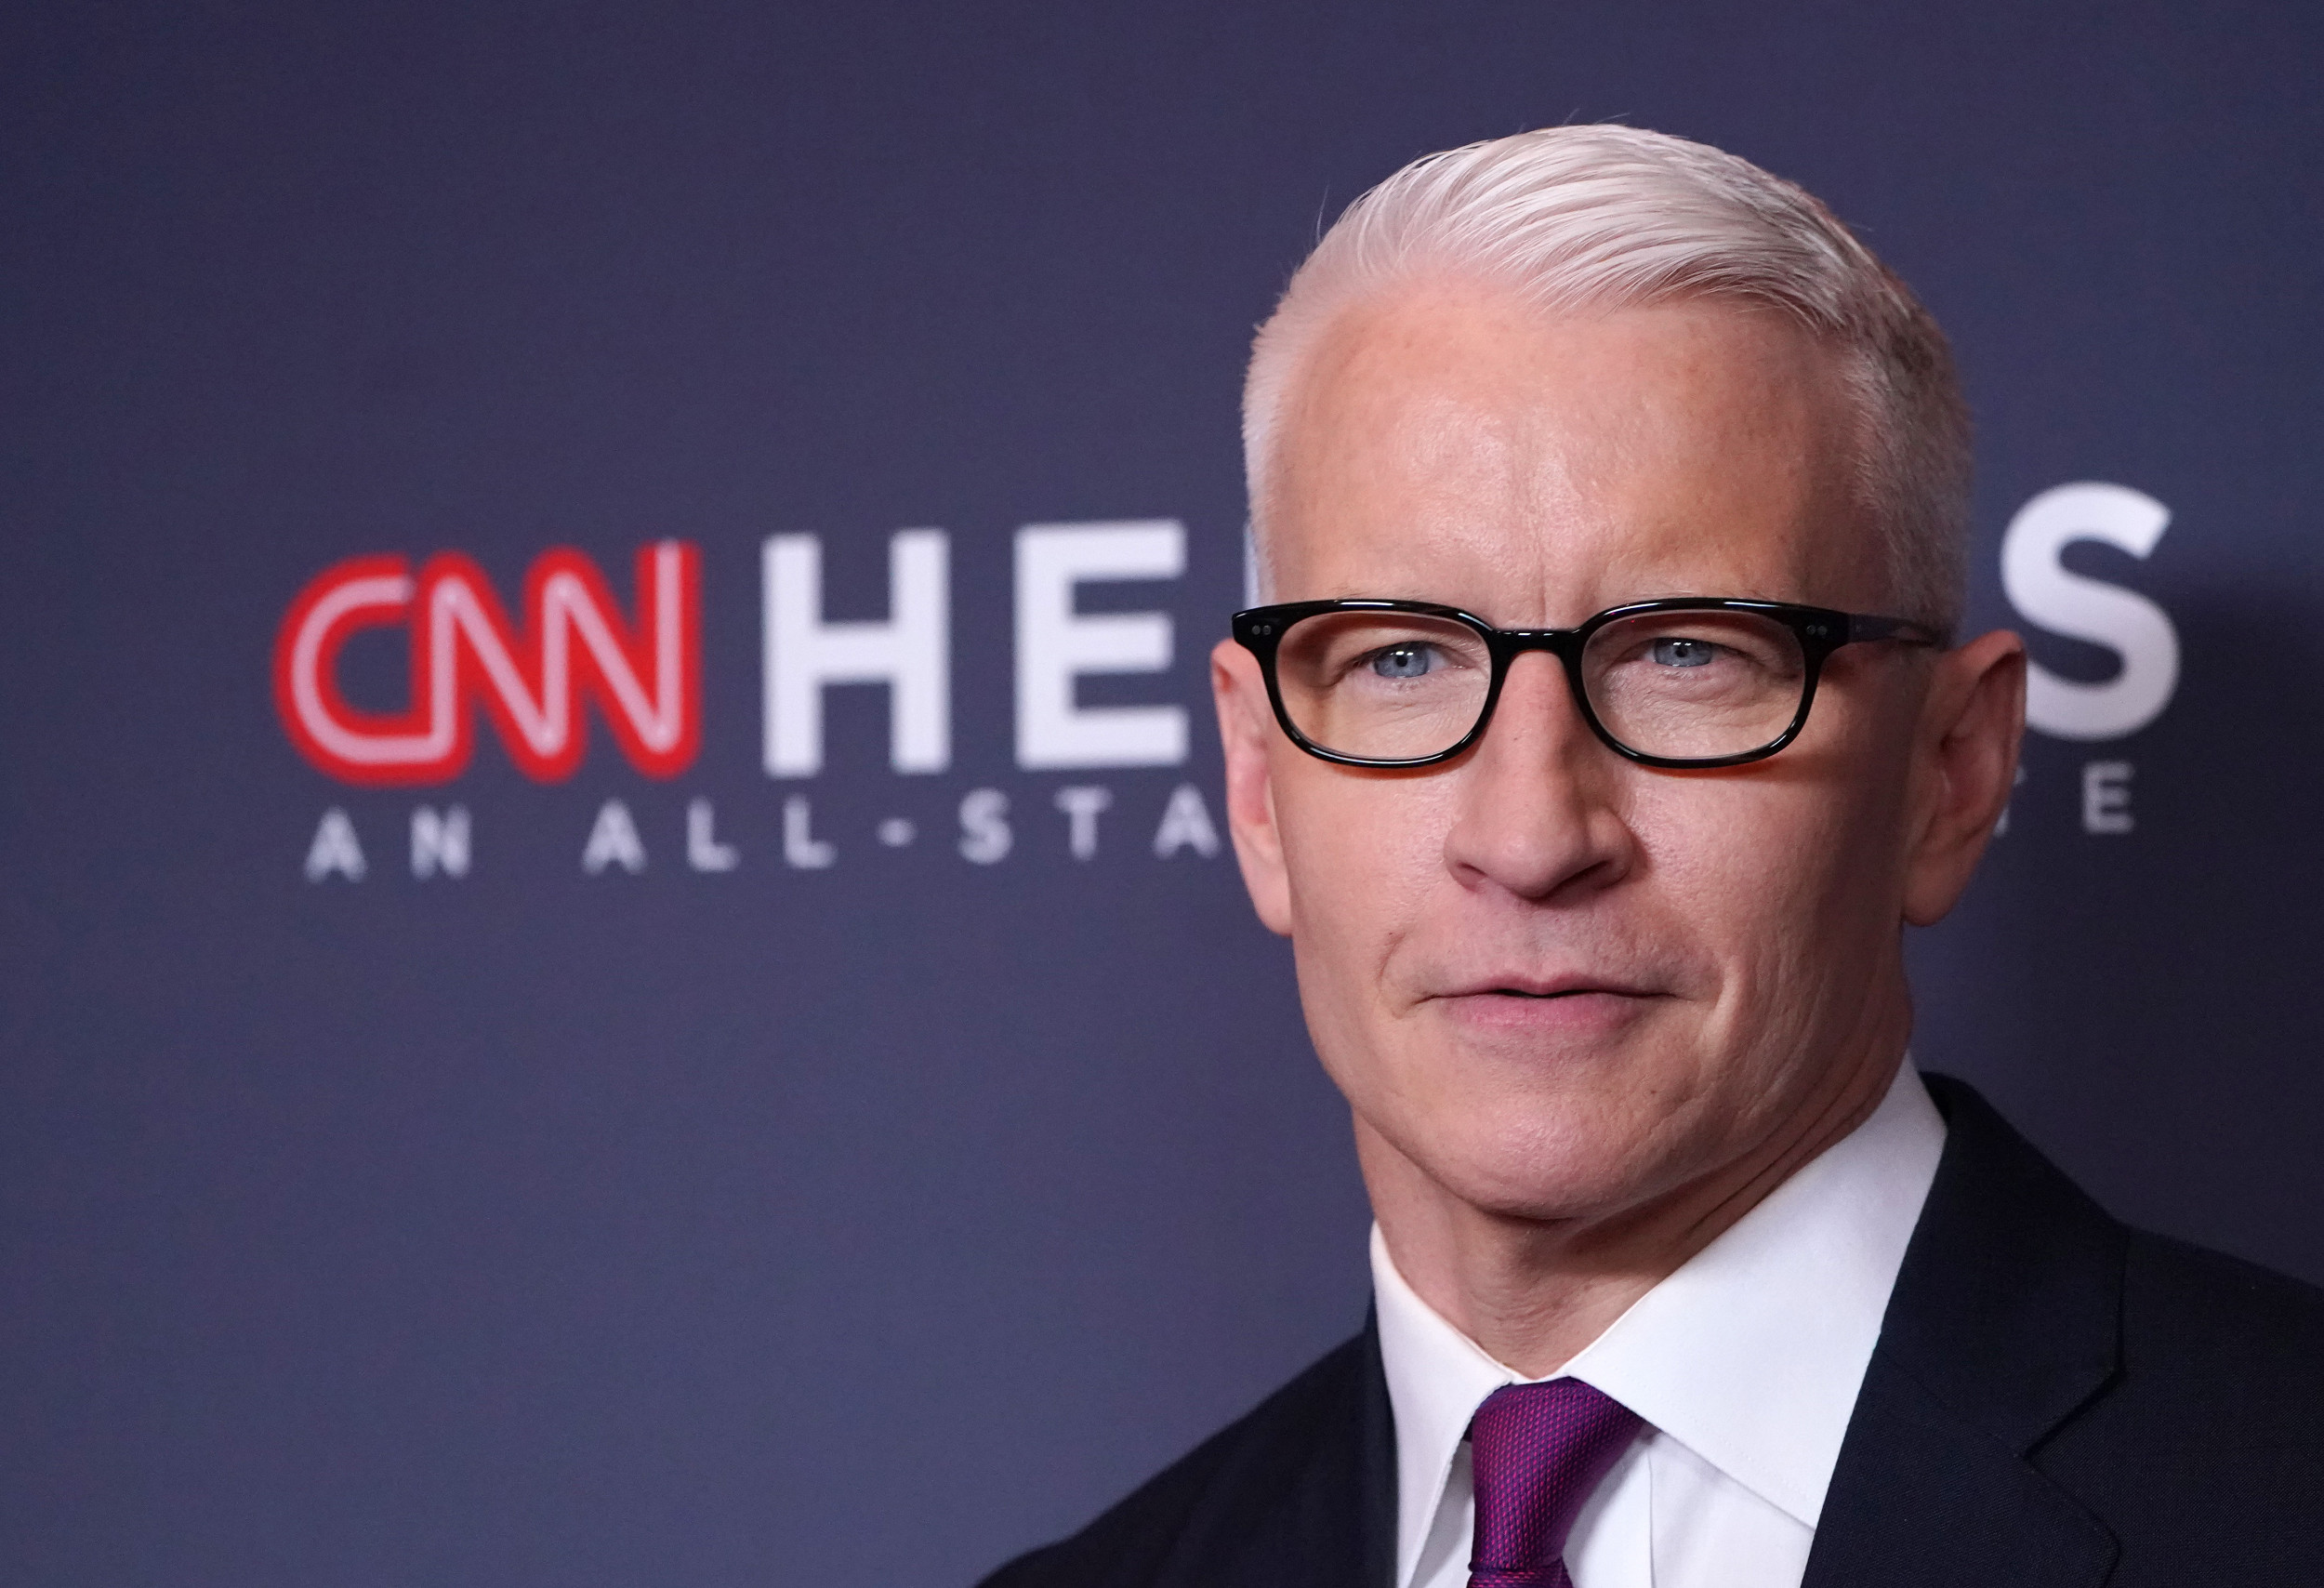 My Pillow Creator Michael Lindell Threatens CNN with Factual Redress Over Anderson Cooper Interview